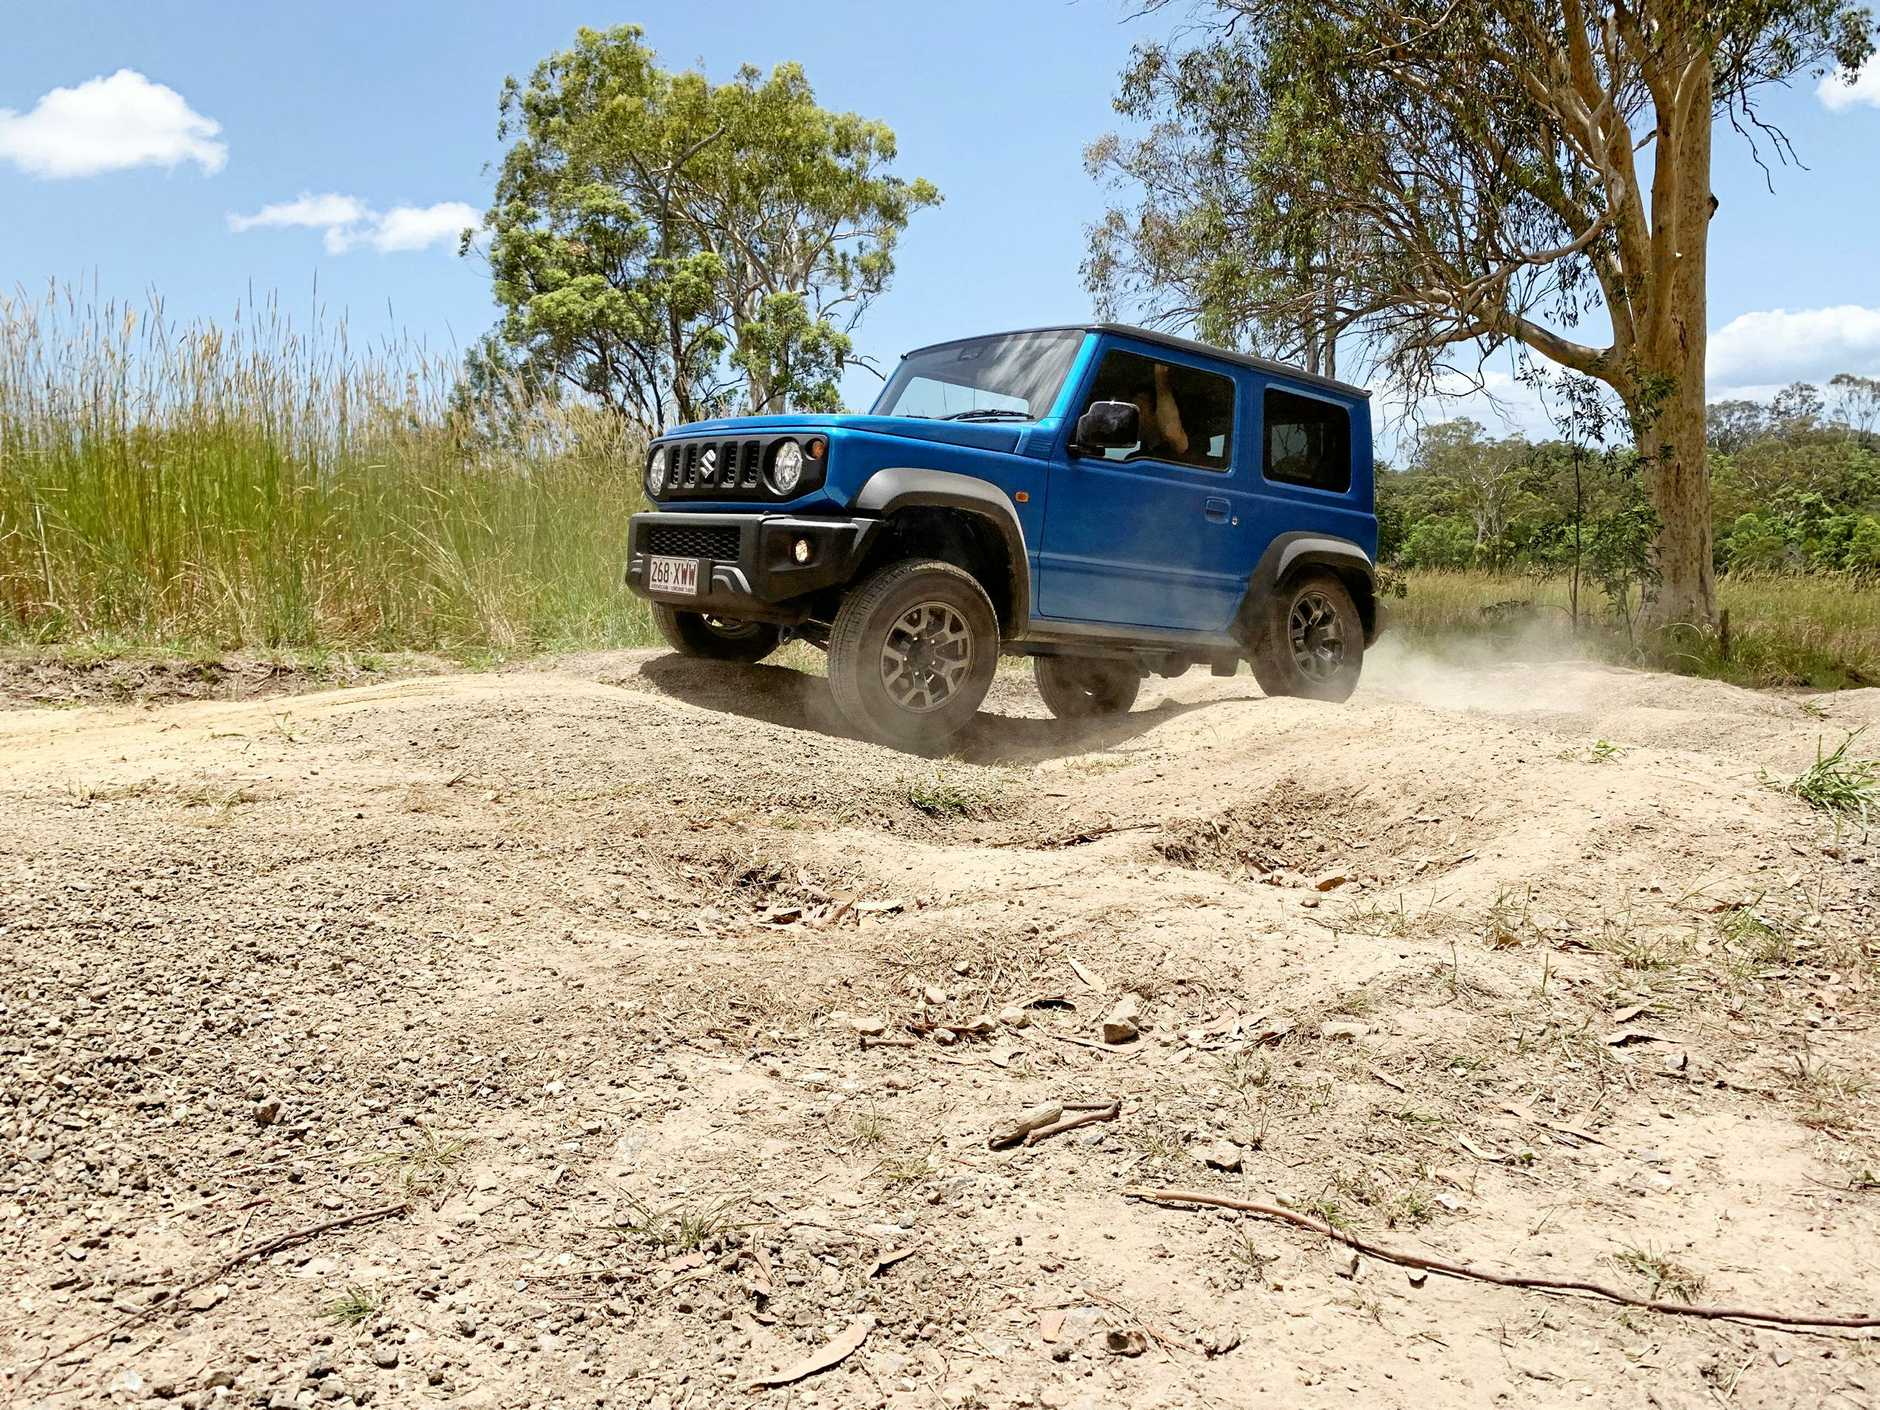 The 2019 Suzuki Jimny.